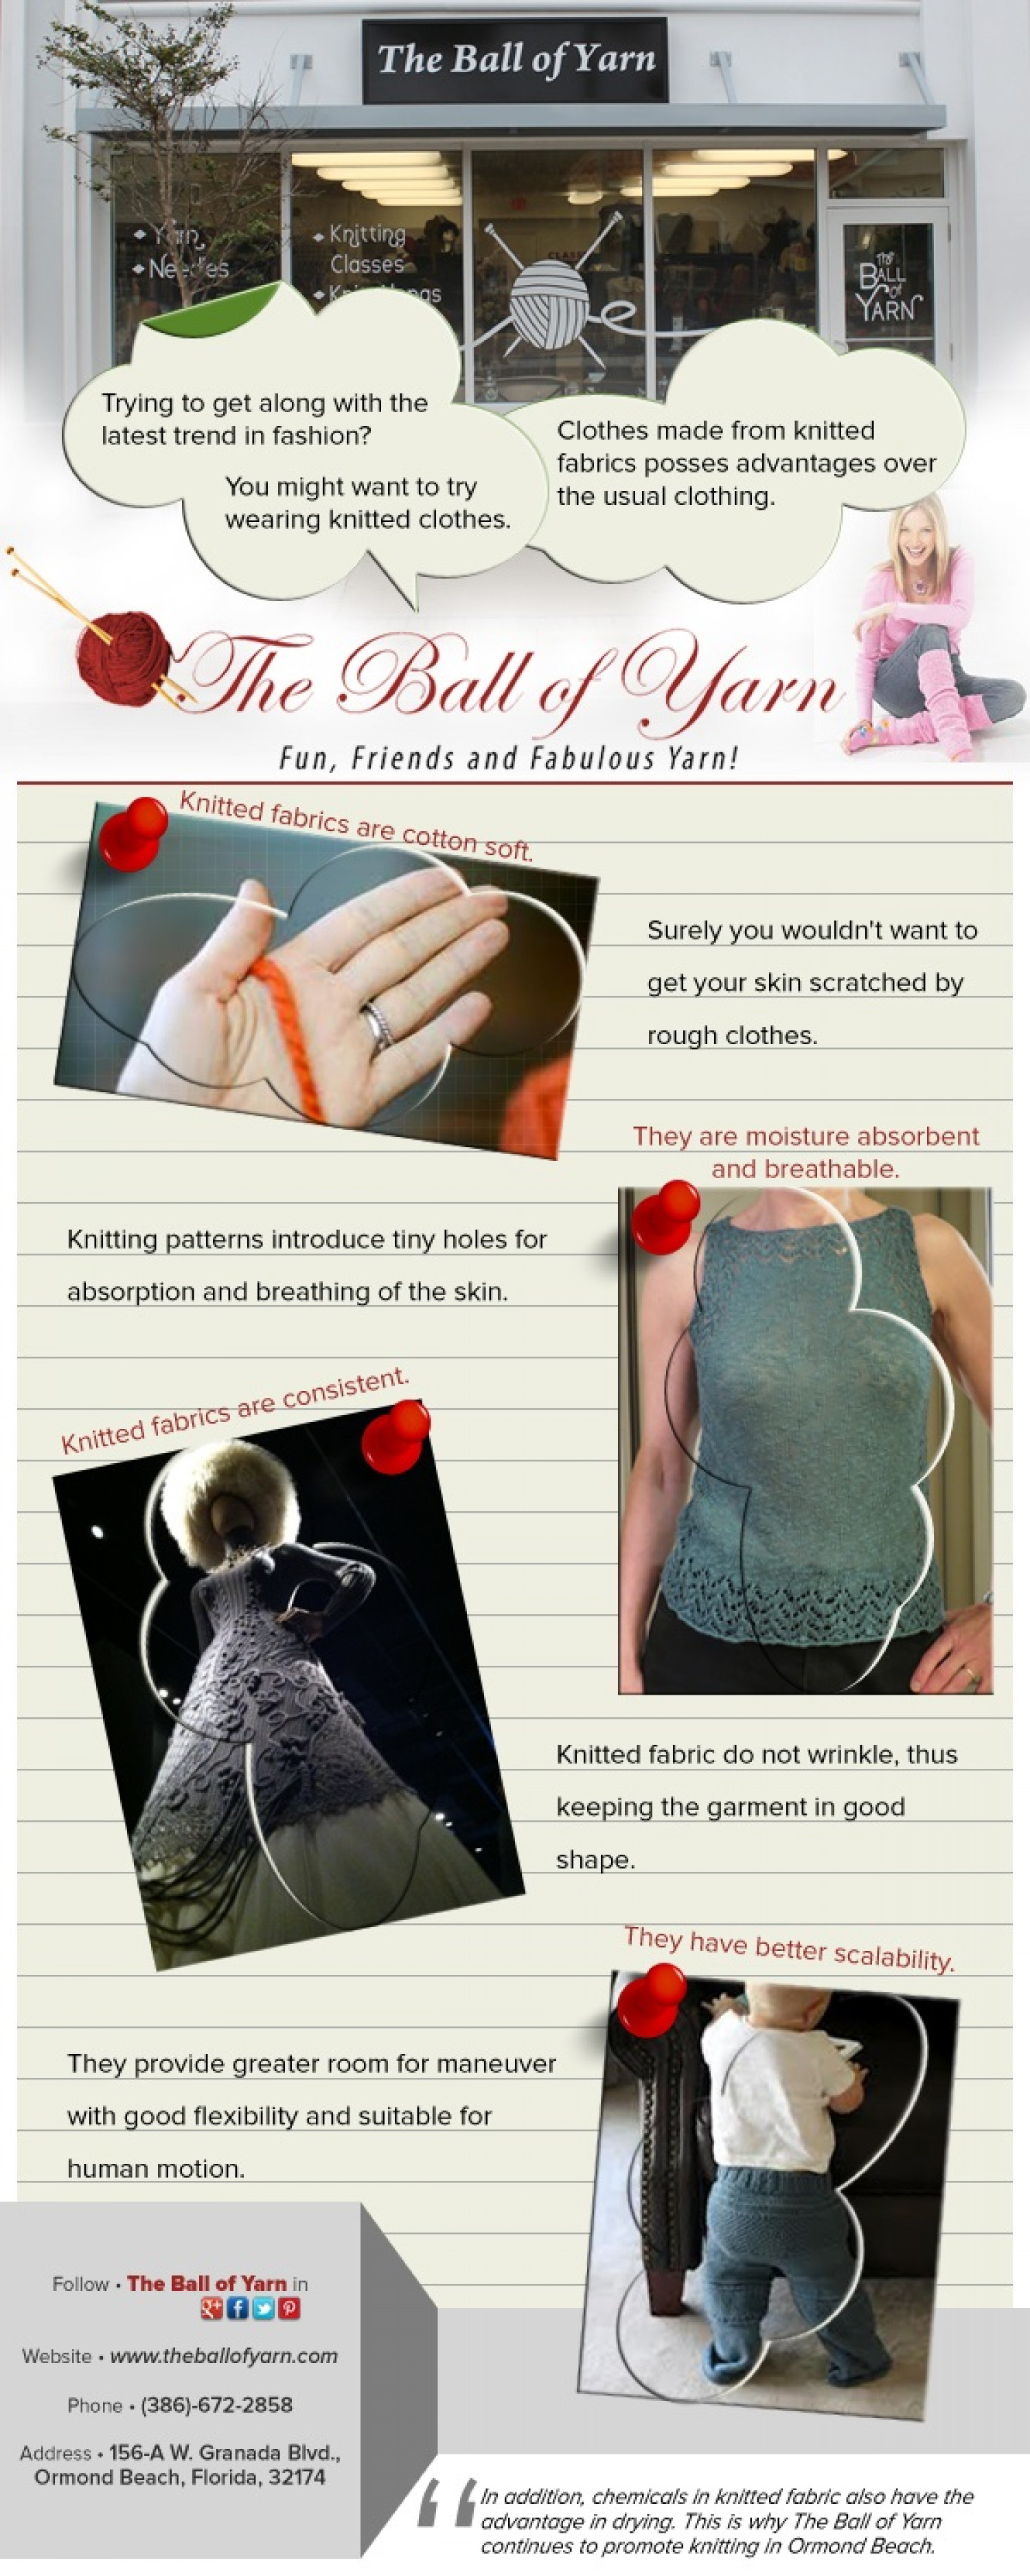 The Qualities of Knitted Fabrics Infographic